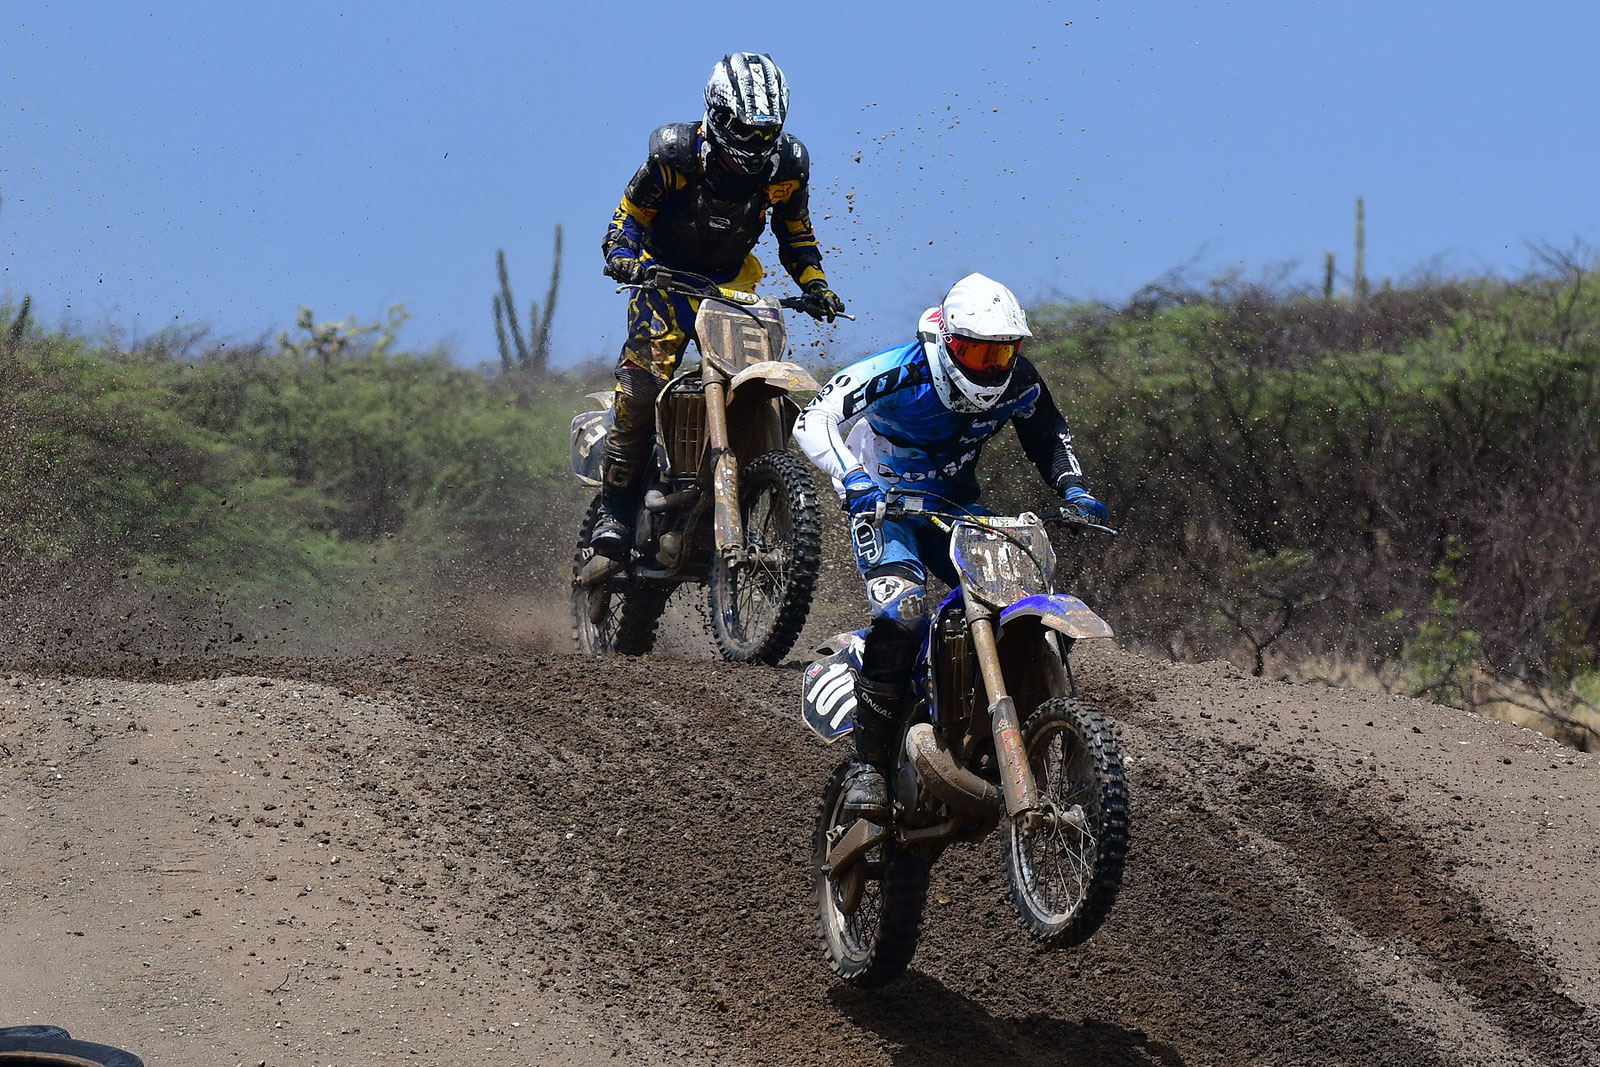 The leaders in the MX Cross held in August on the island of Curacao.